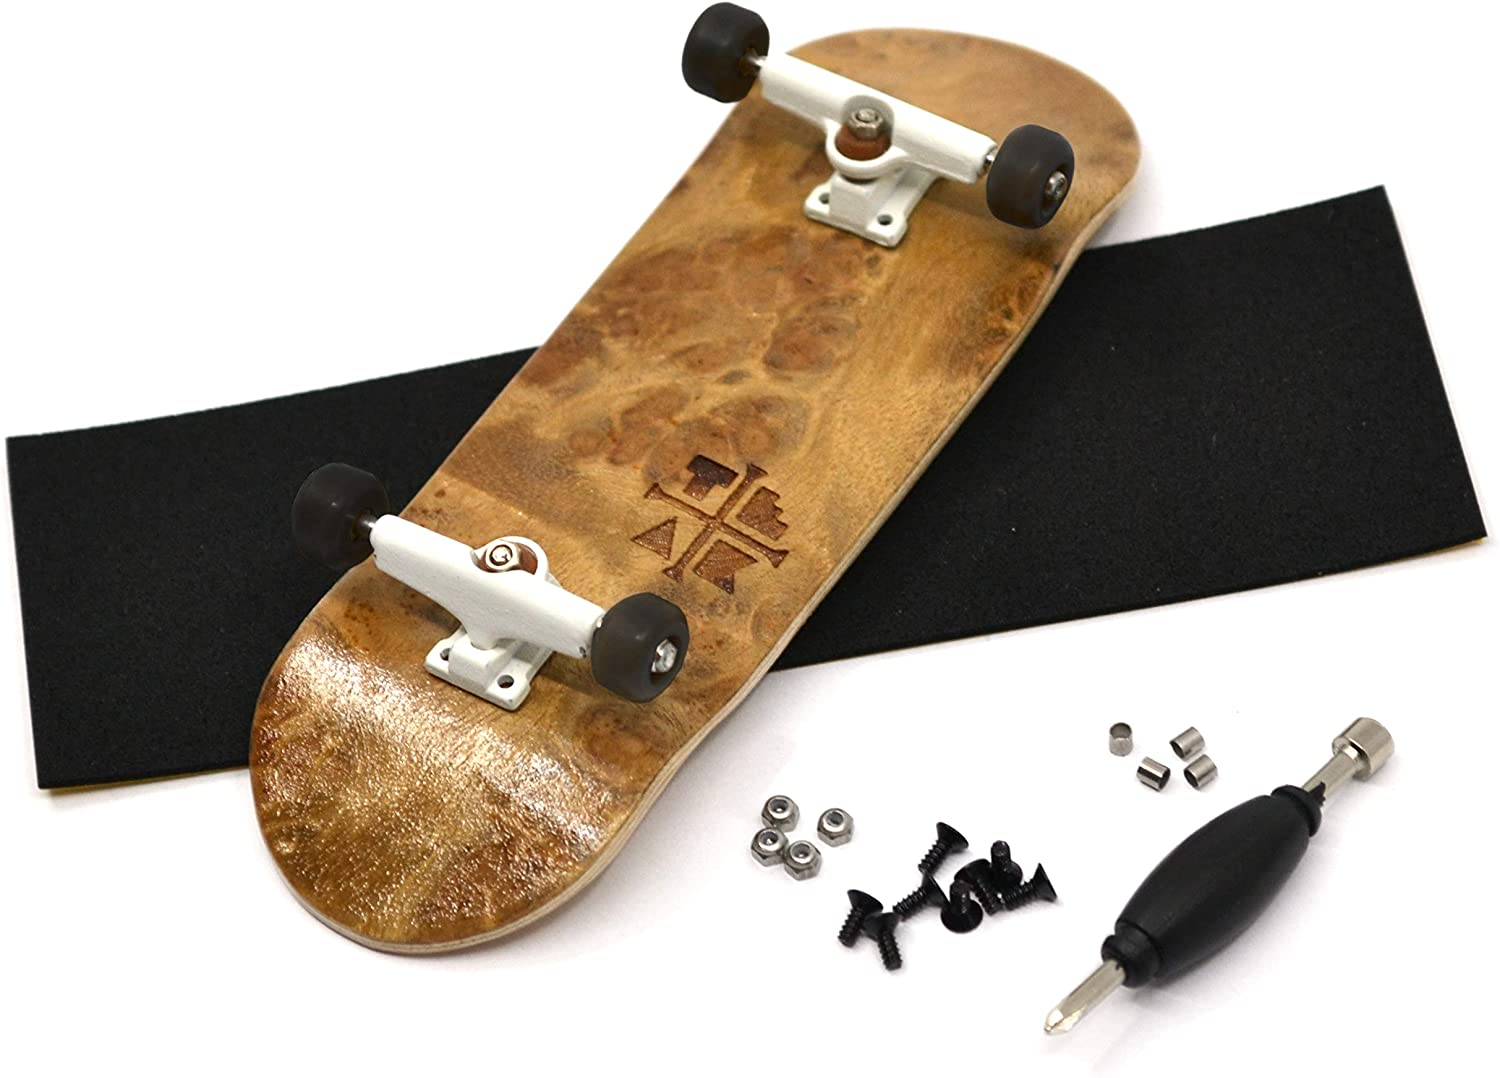 Teak Tuning Prolific Complete Fingerboard with Upgraded Components - Pro Board Shape and Size, Bearing Wheels,Trucks, and Locknuts - 32mm x 97mm Handmade Wooden Board - Toasted SMores Burl Edition